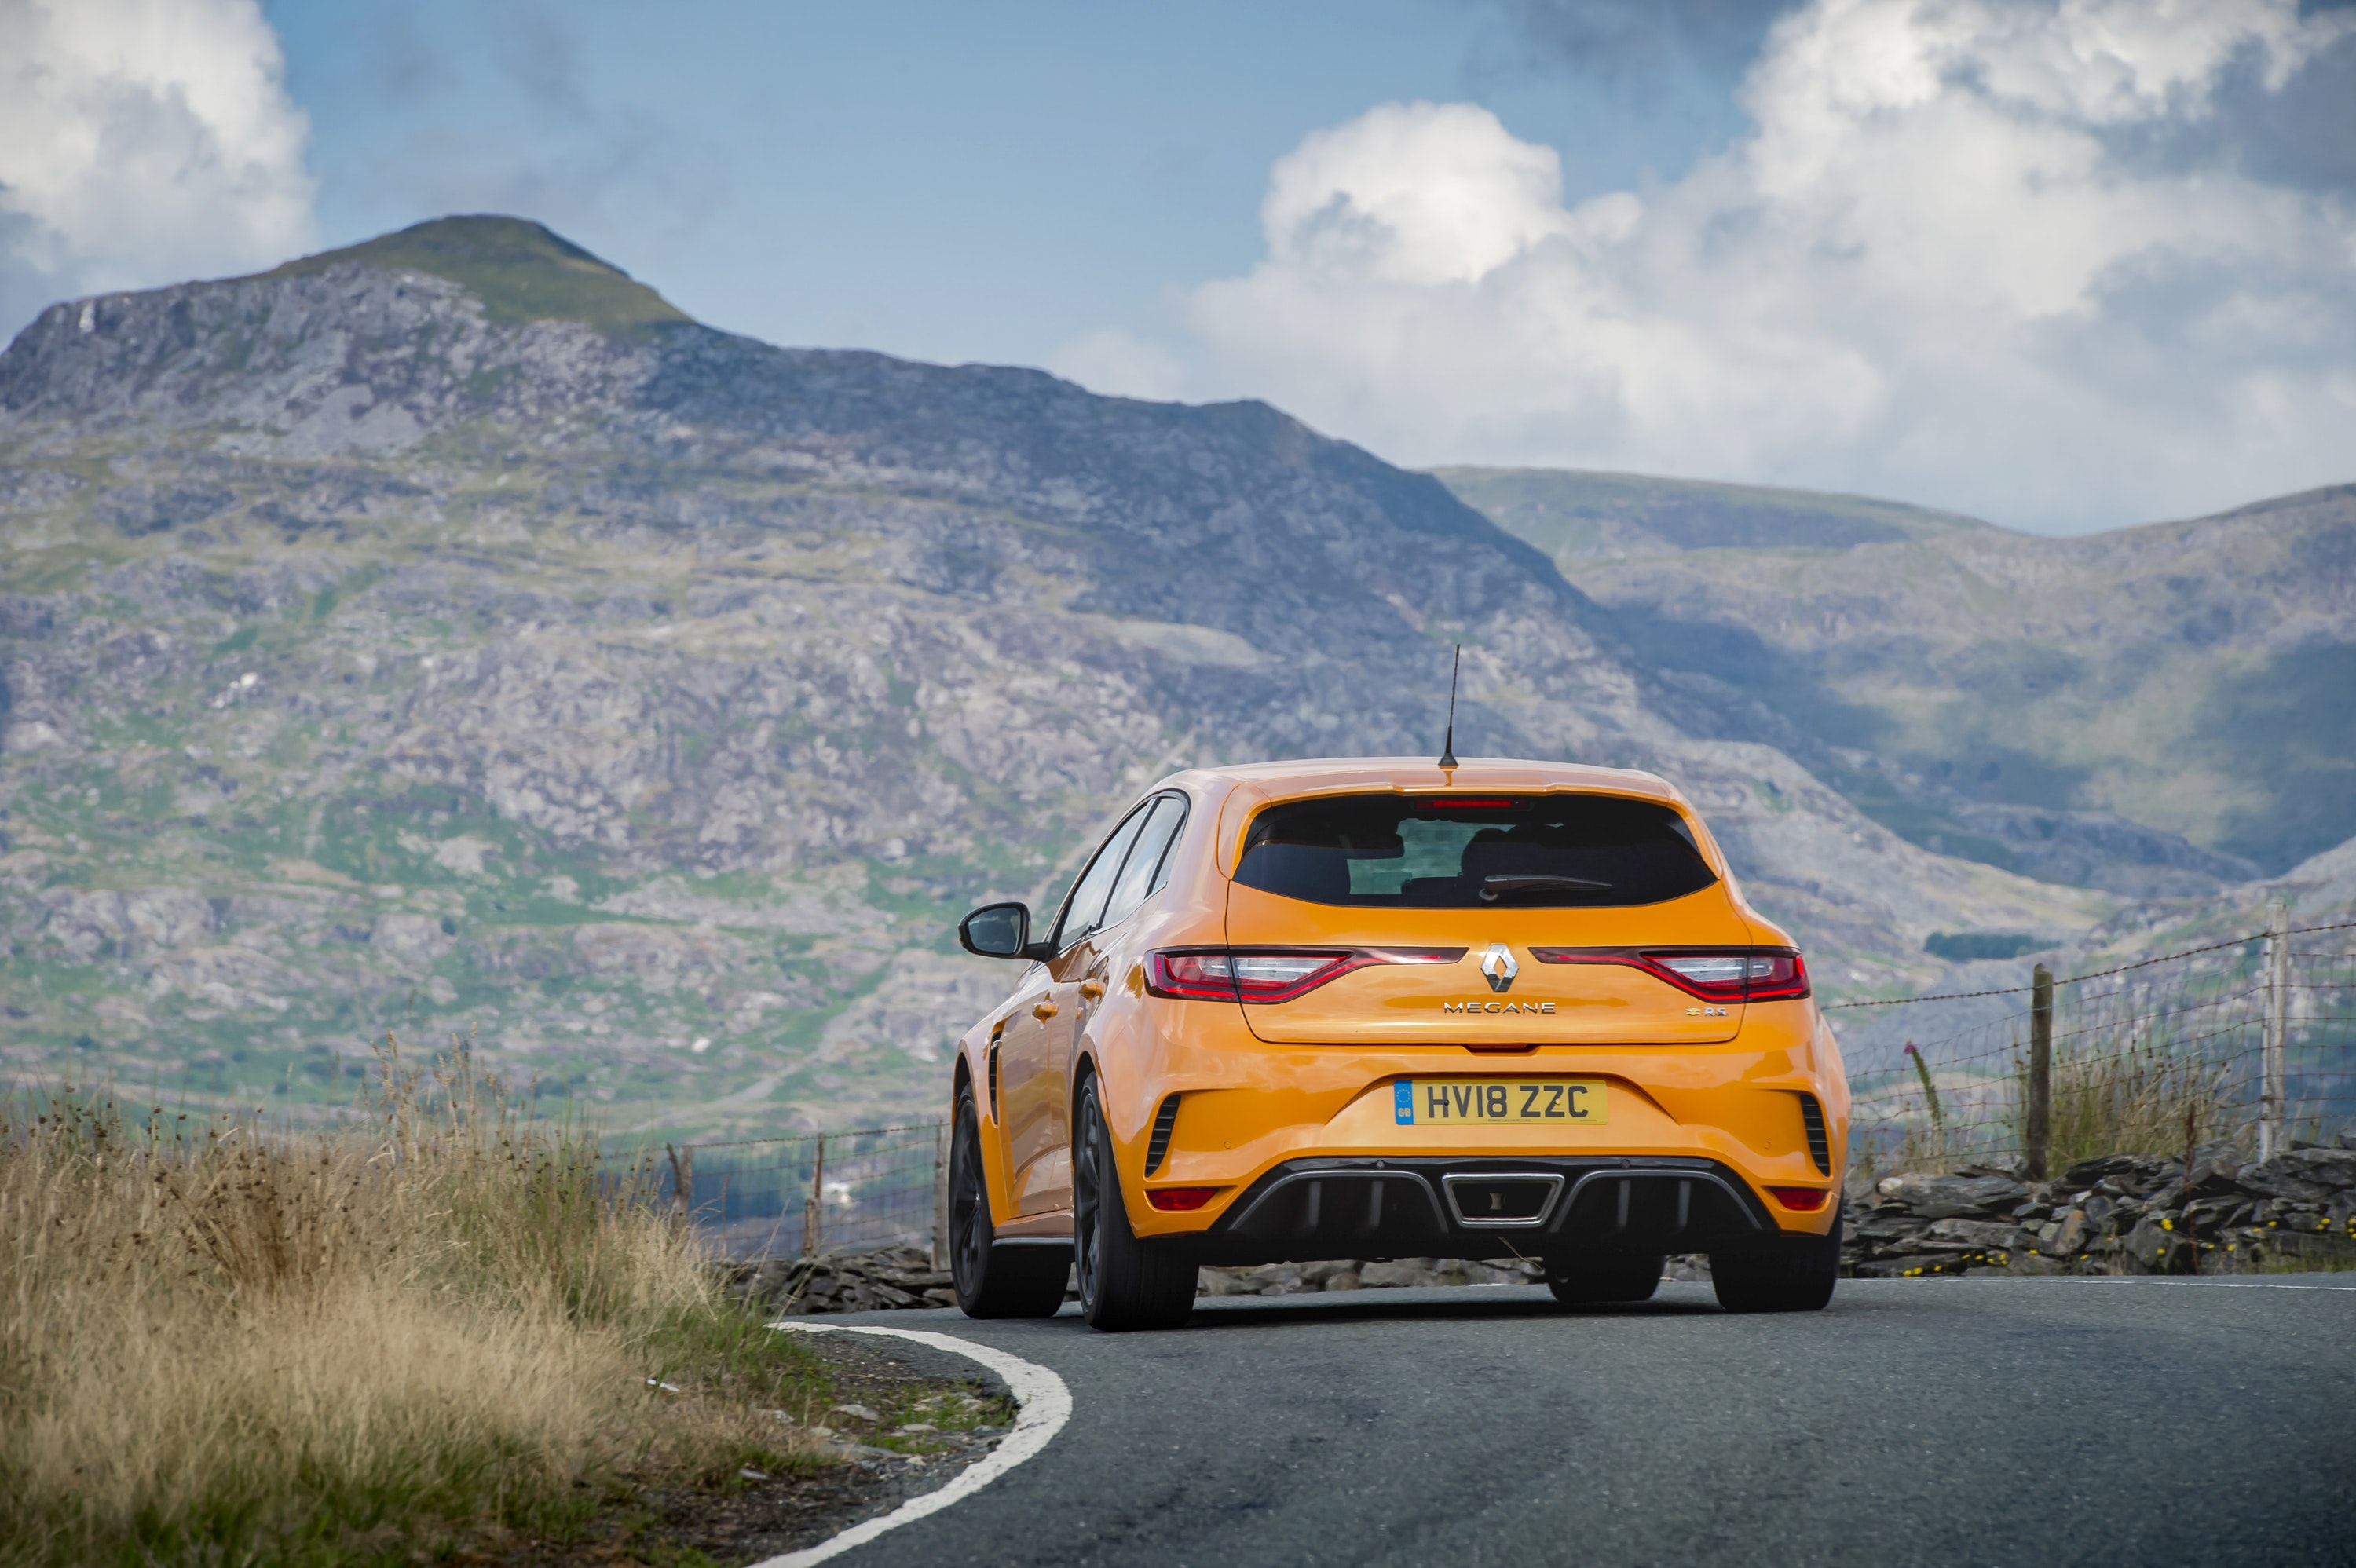 rear view of a Orange Renault Megane RS parked on a road with a mountain in the background